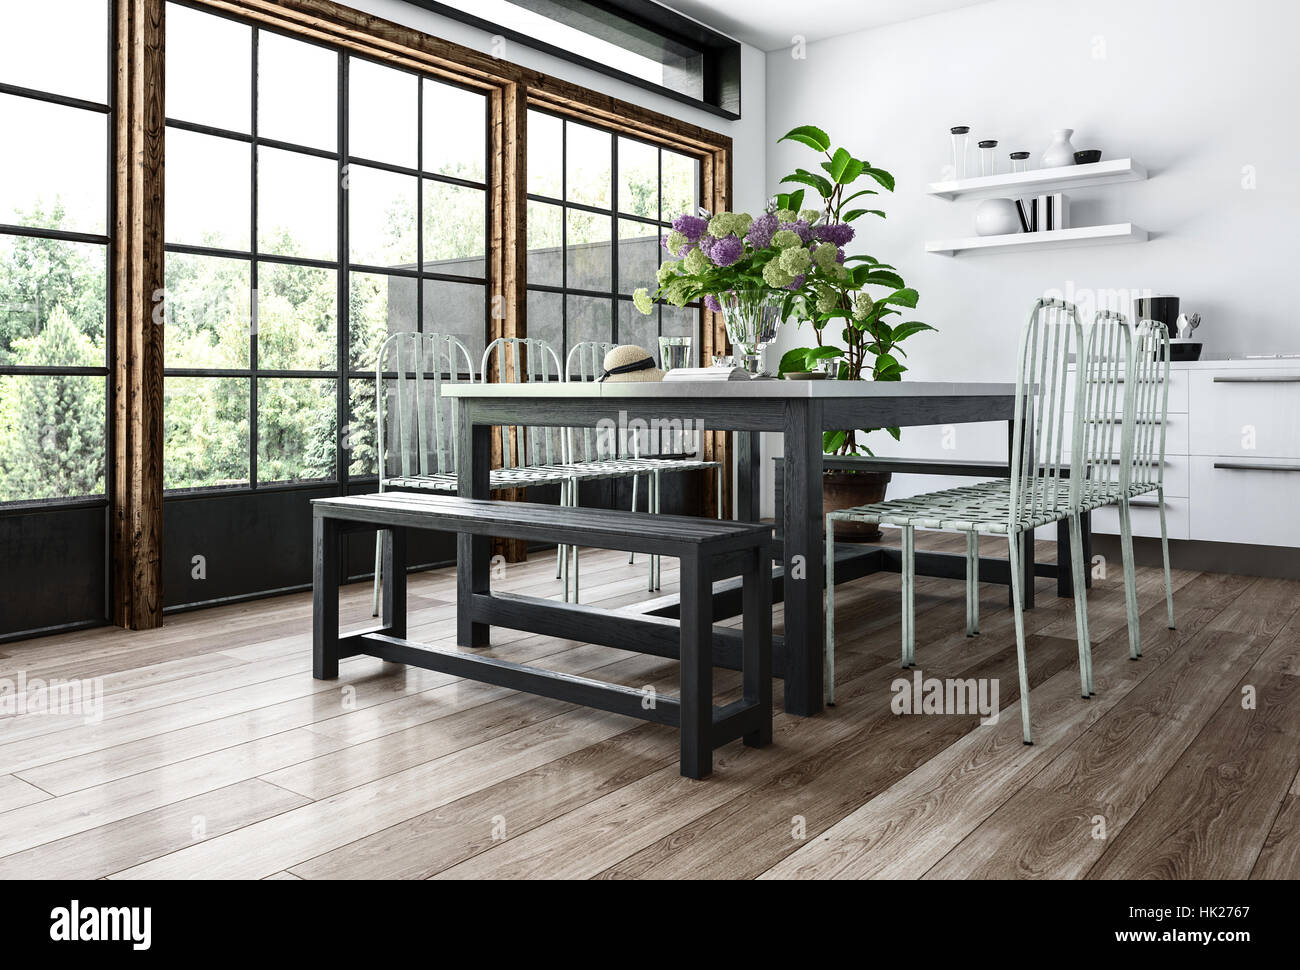 Modern Dining Room In Minimalist Interior With Chairs And Benches Stock Photo Alamy